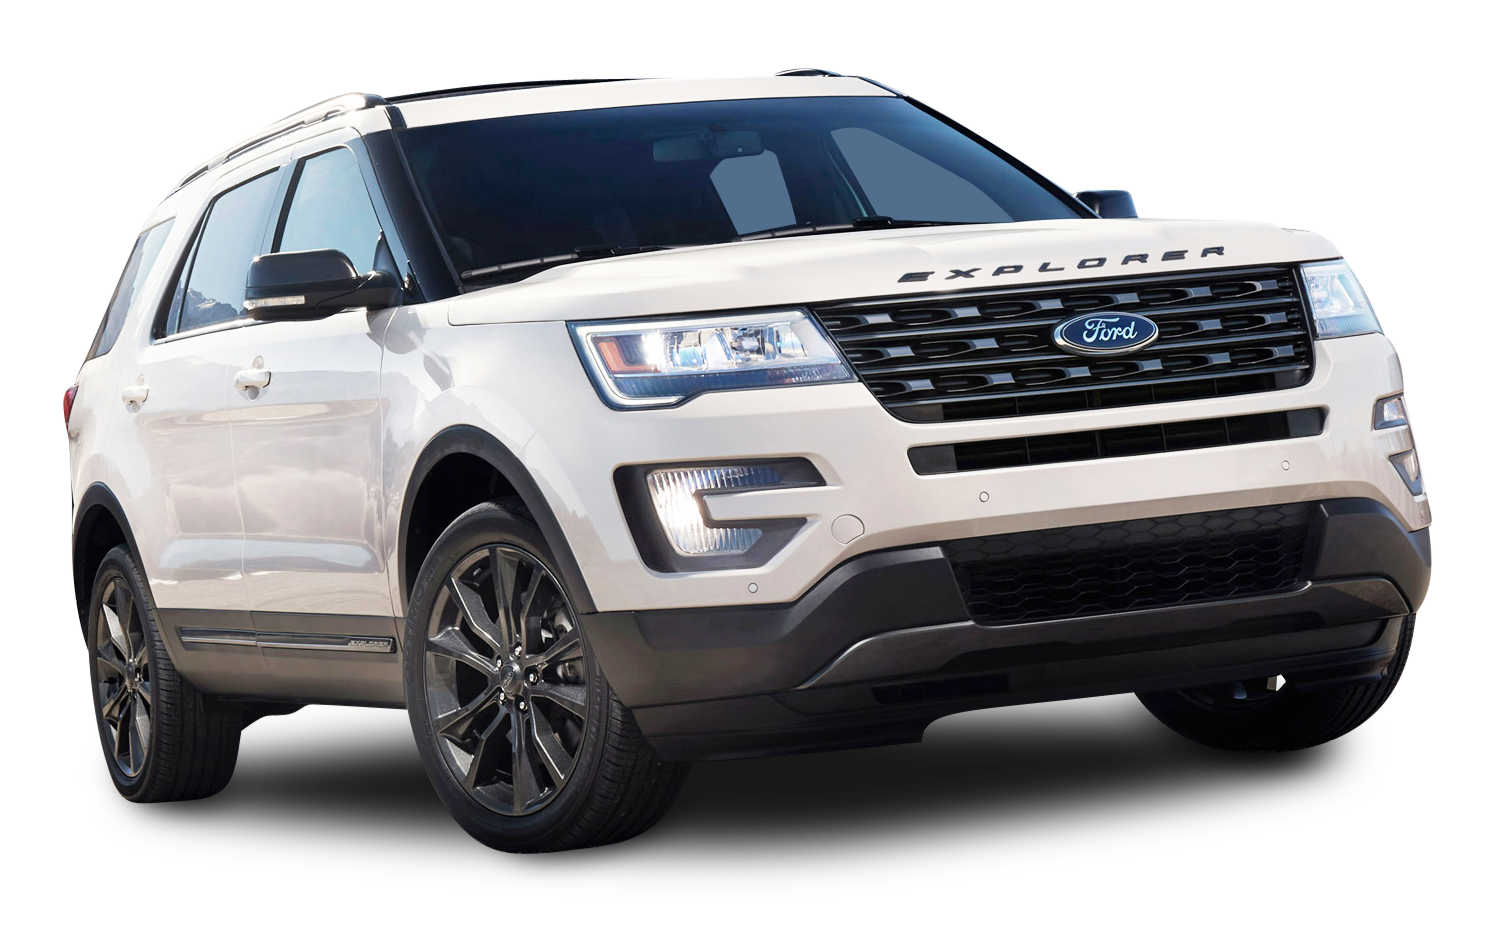 White Ford Explorer SUV Car PNG Image.